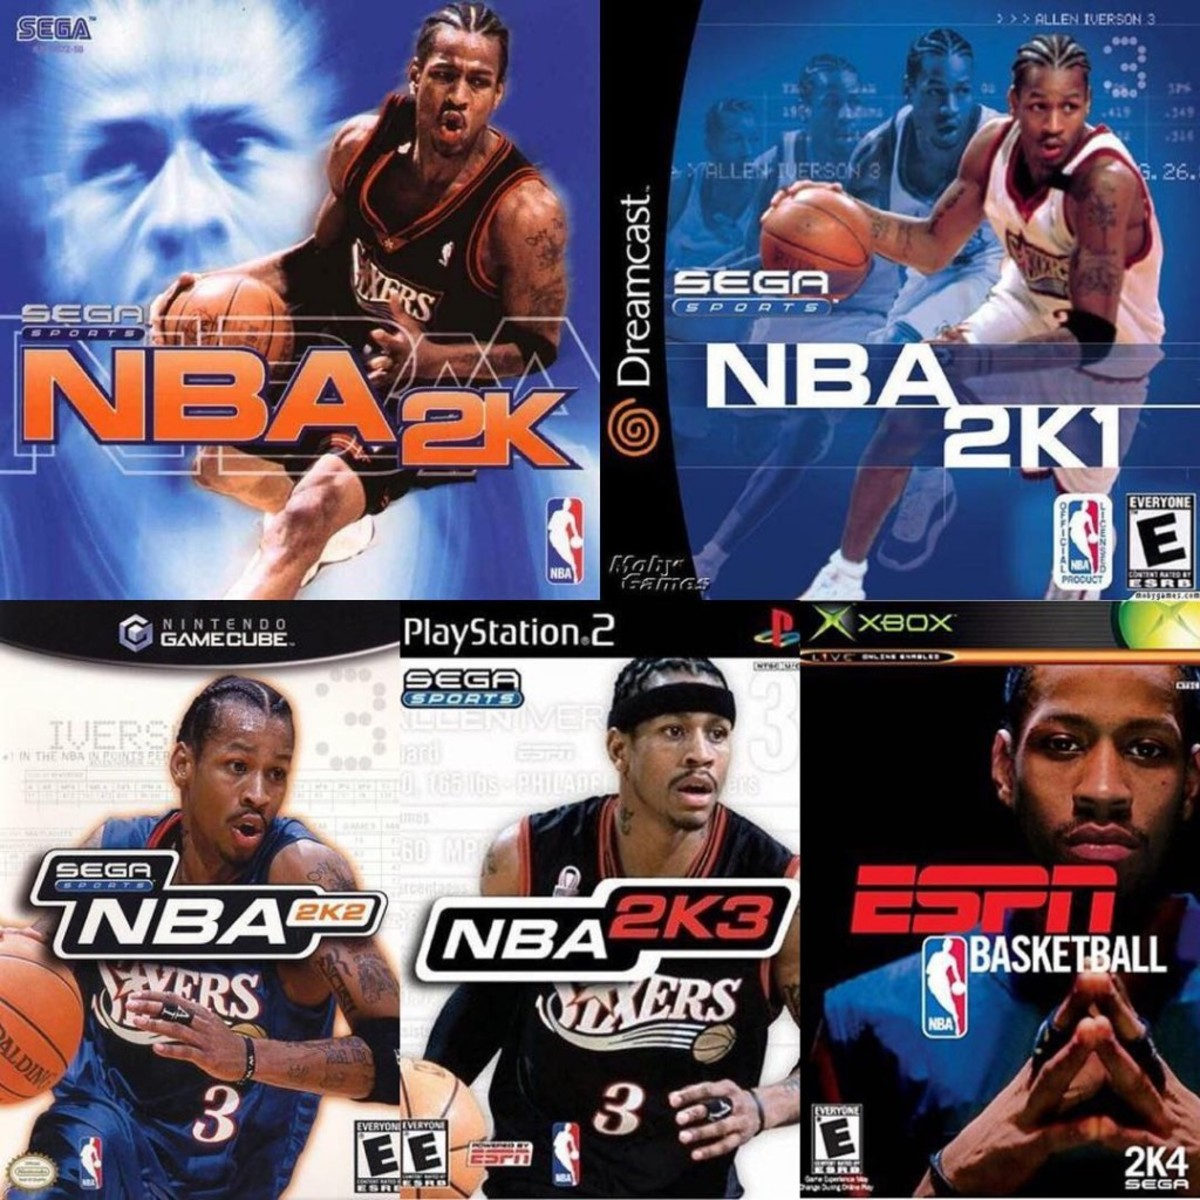 NBA 2K Covers Through The Years